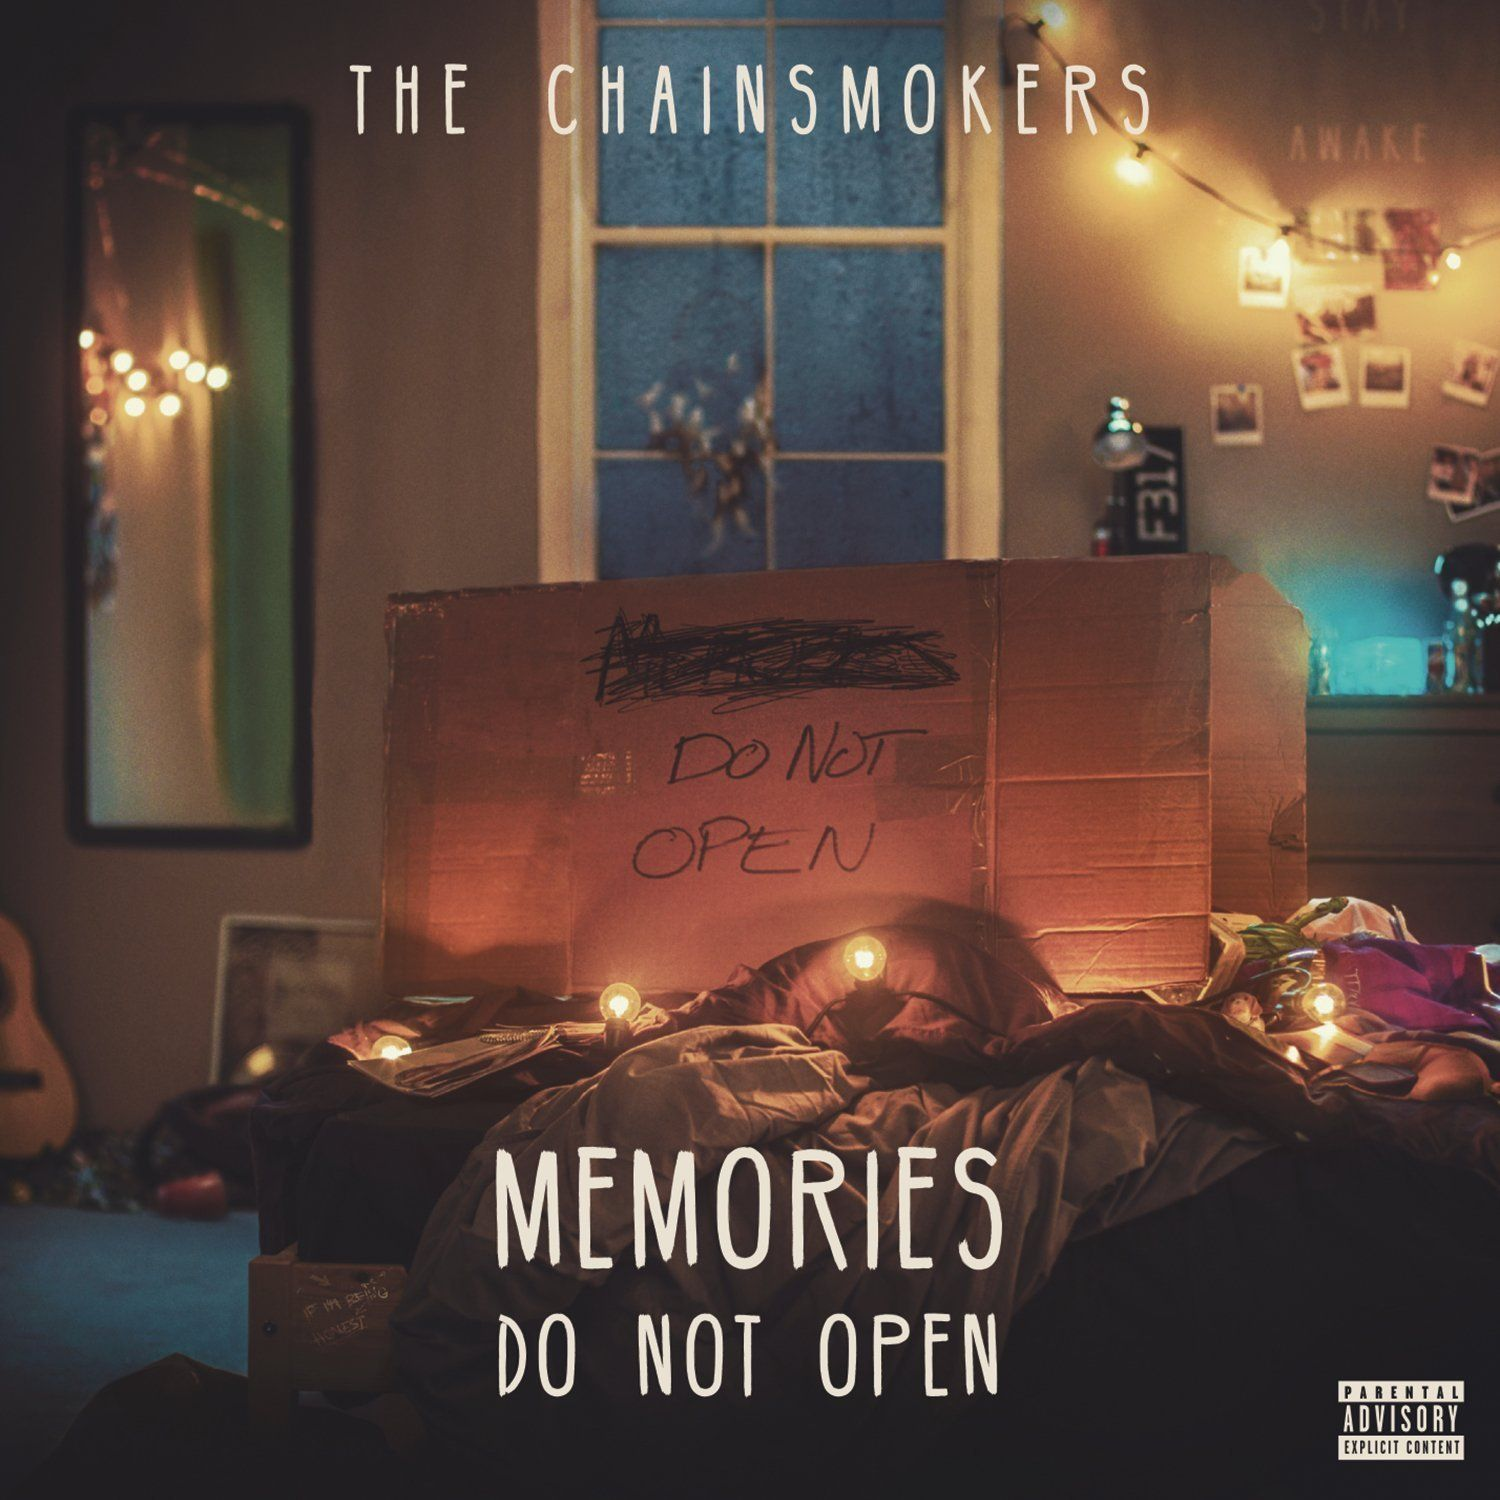 The Chainsmokers - Memories... Do Not Open album cover